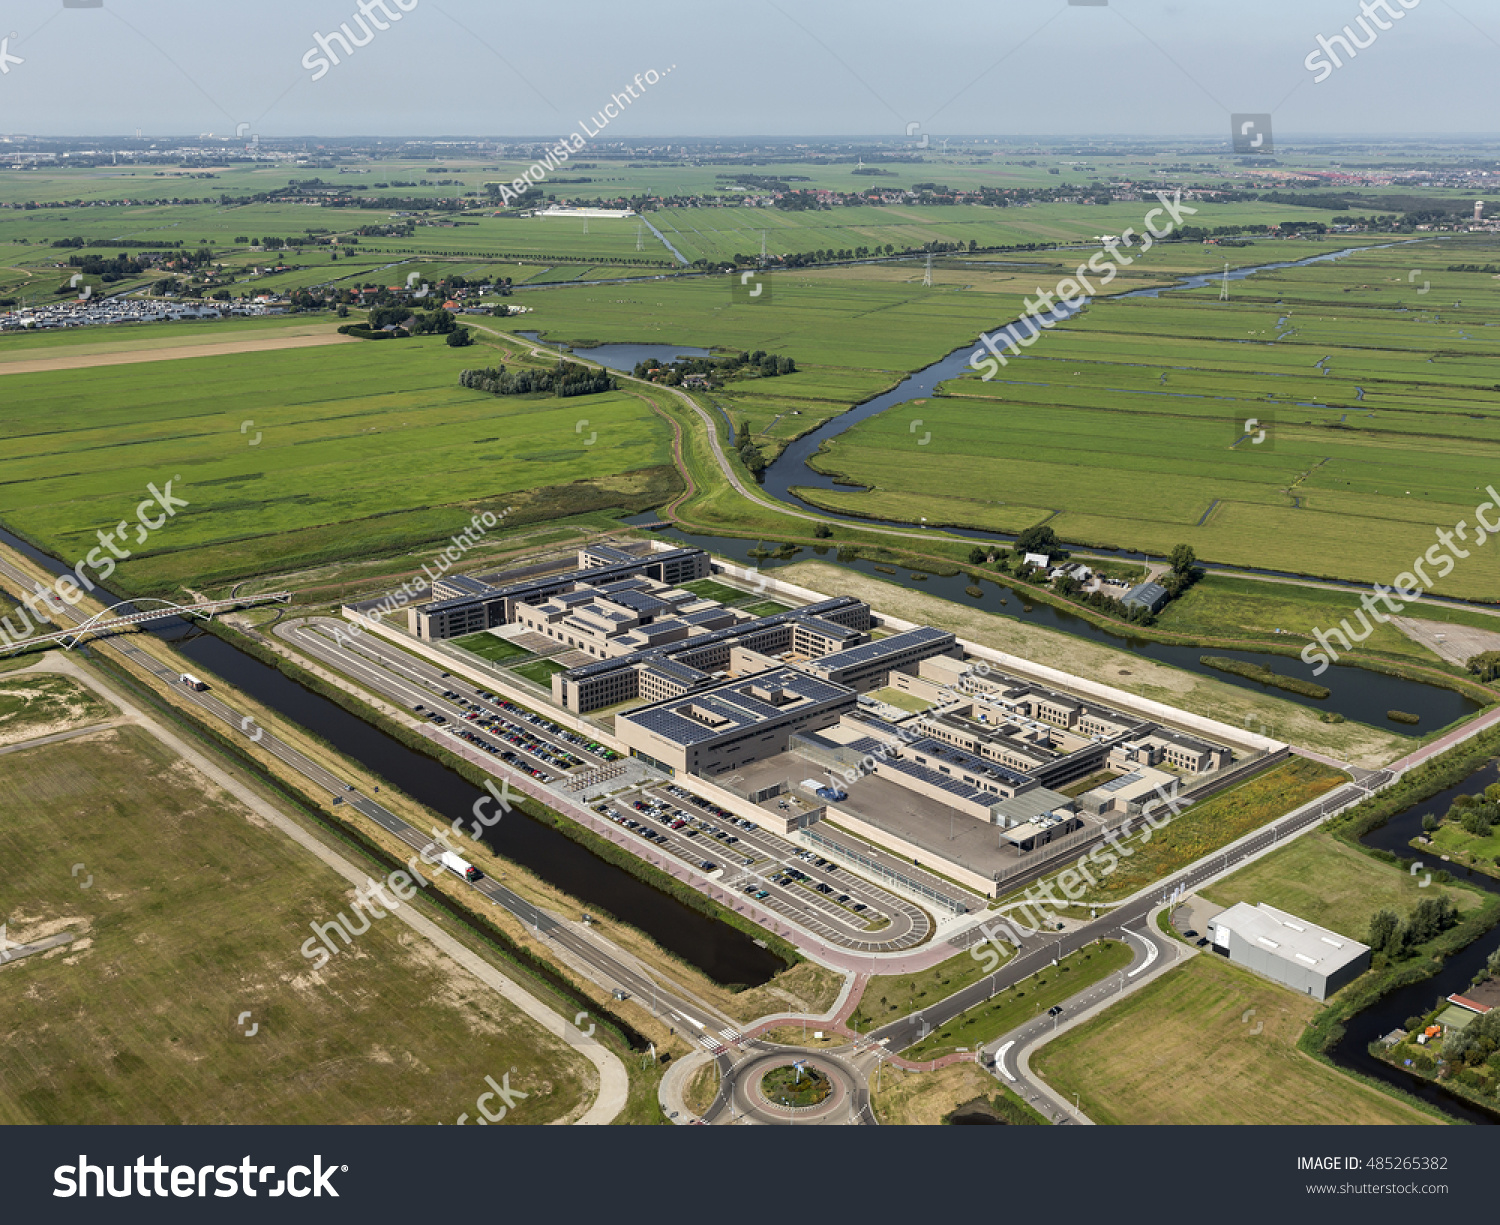 Aerial View Large Prison Netherlands Located Stock Photo - Where is the netherlands located